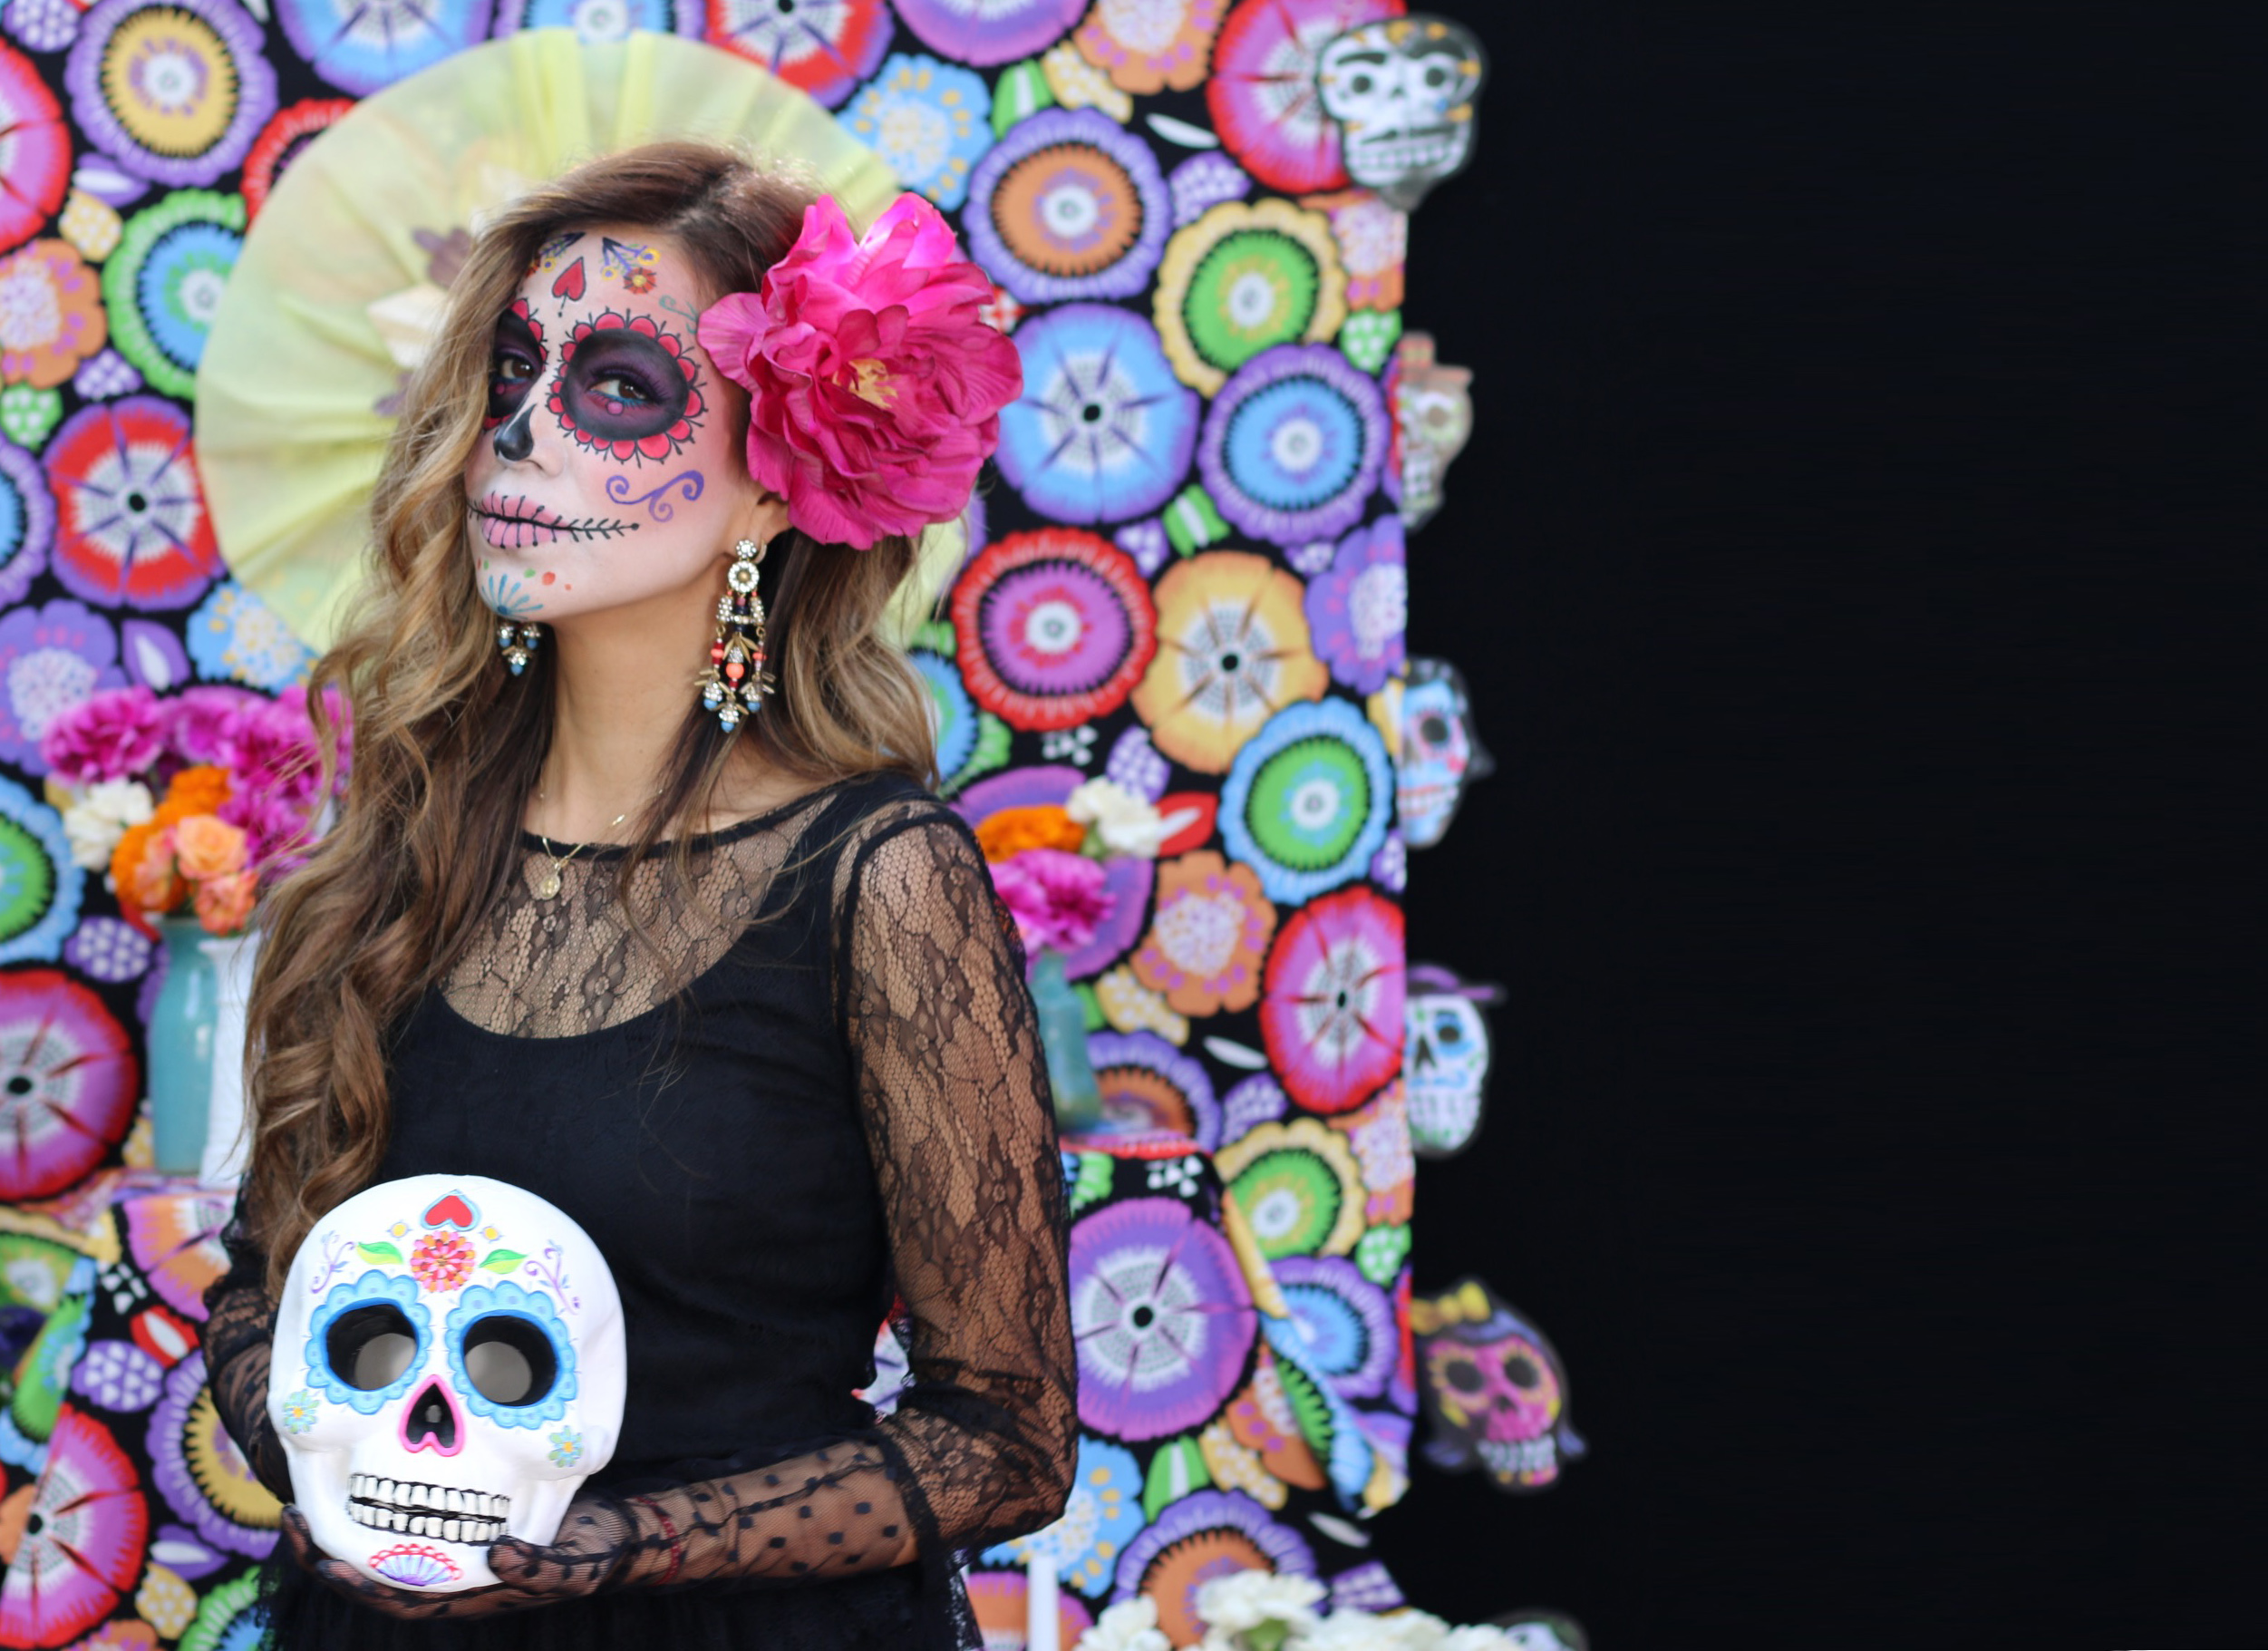 Dia De Los Muertos Party - The Beautifulcircus.com